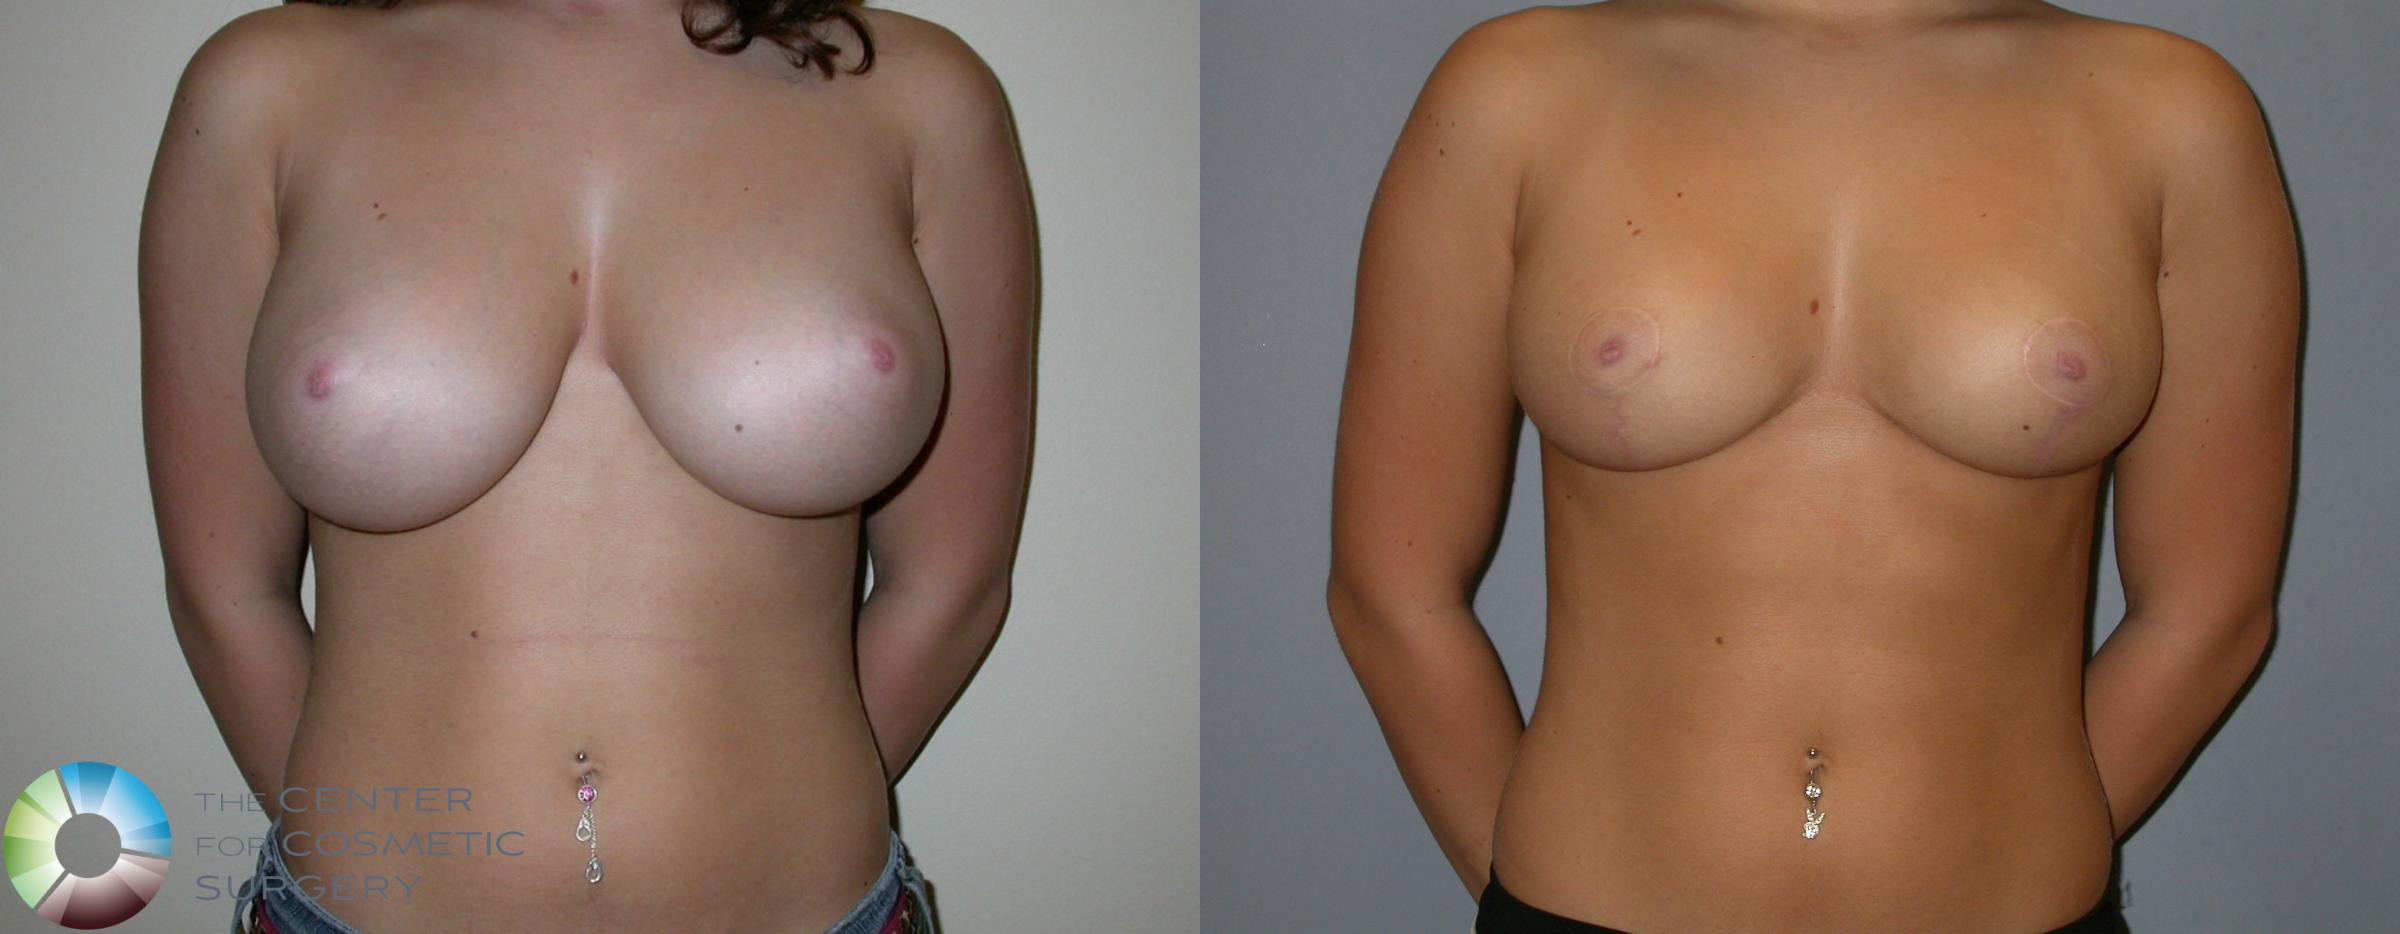 Breast Reduction Case 217 Before & After View #1 | Golden, CO | The Center for Cosmetic Surgery